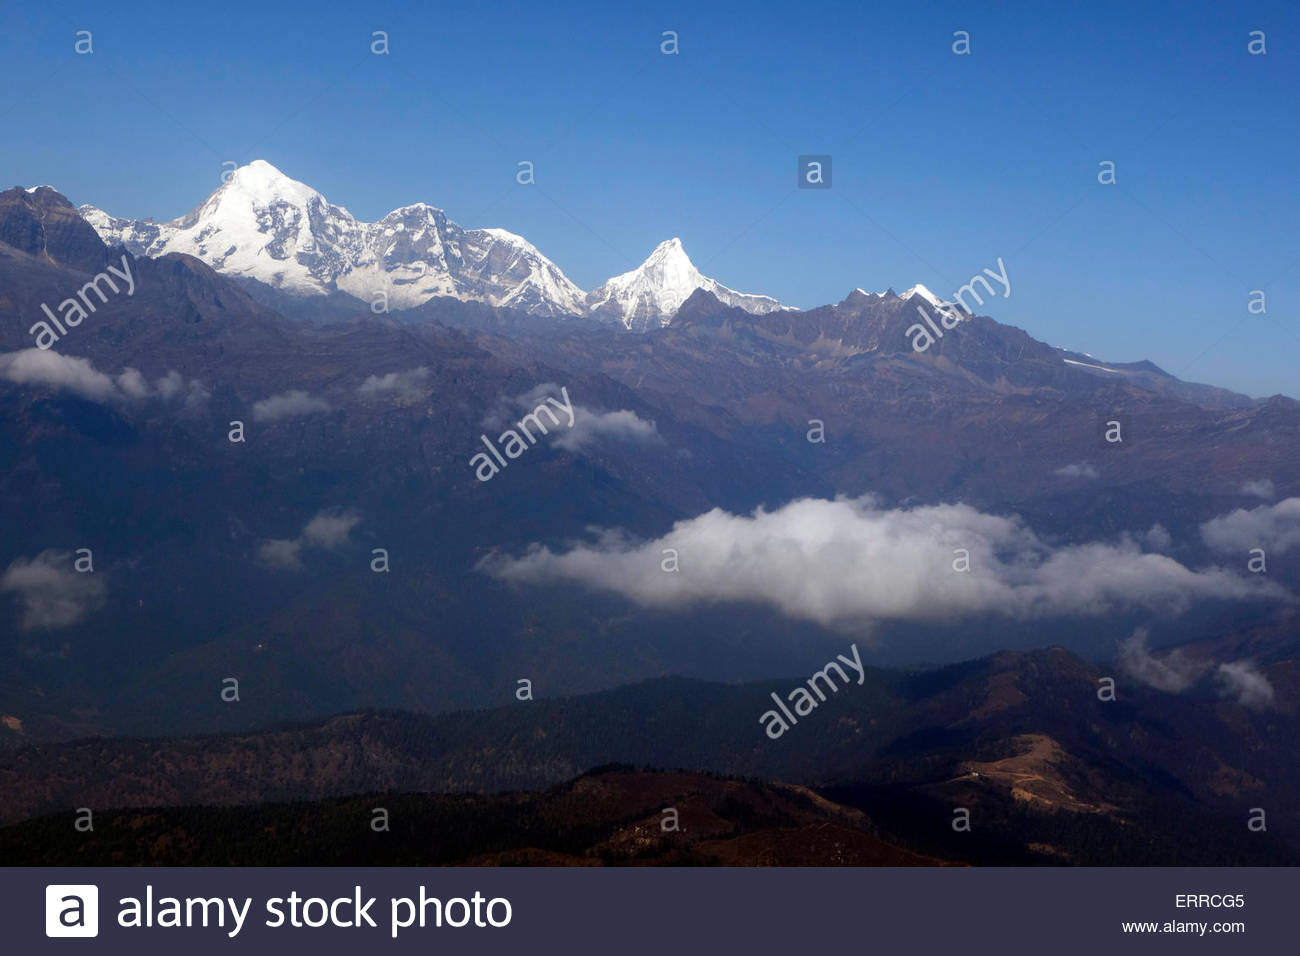 Himalayan mountain ranges Bhutan - Stock Image